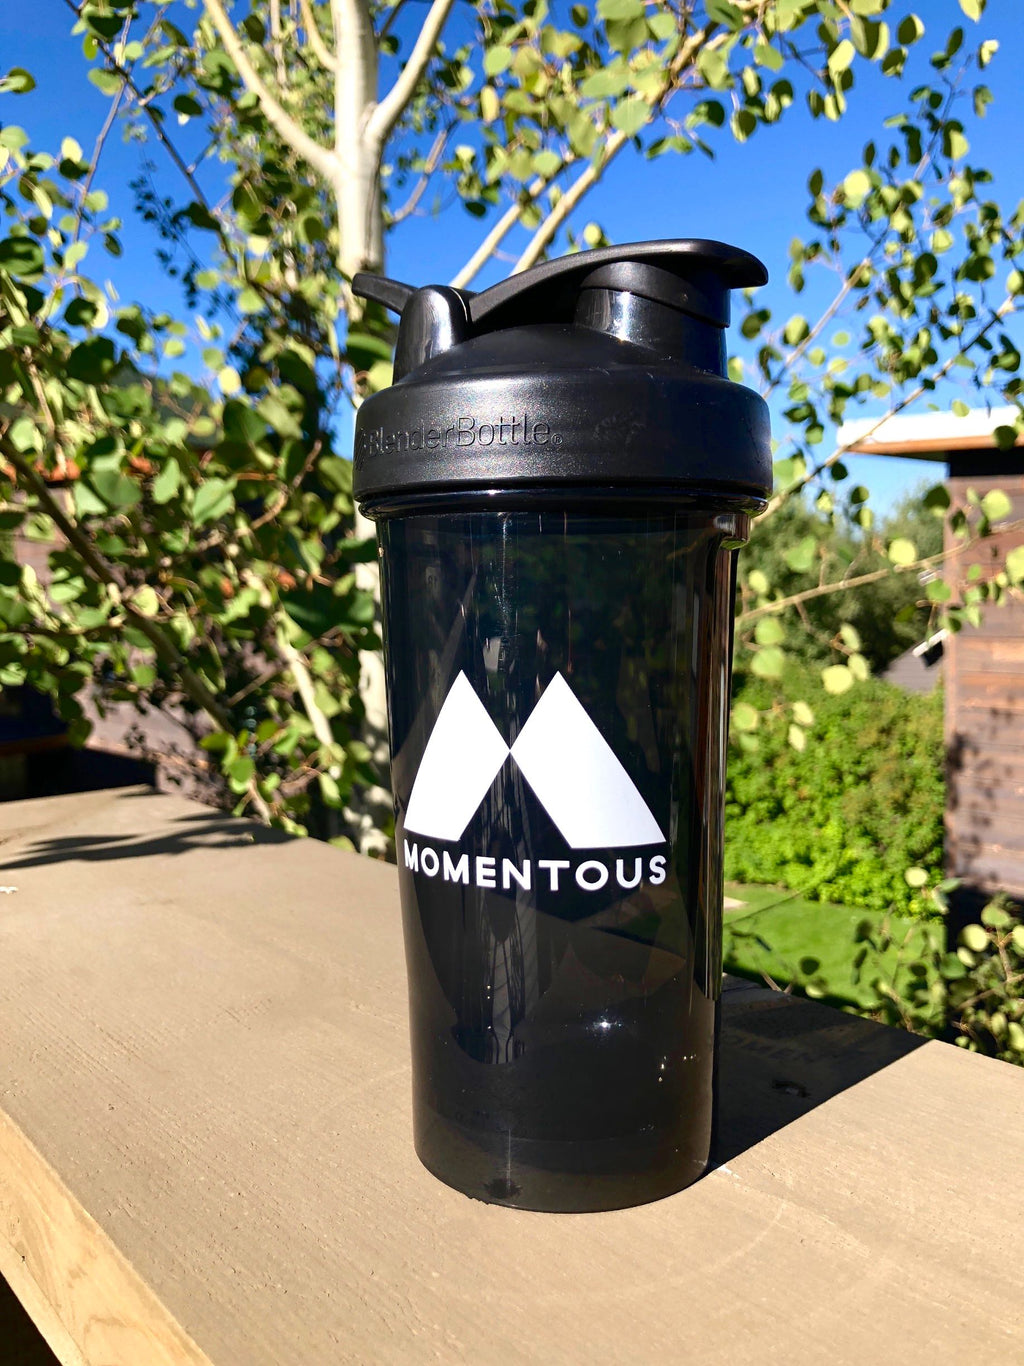 Momentous Custom 24oz Blender Bottle